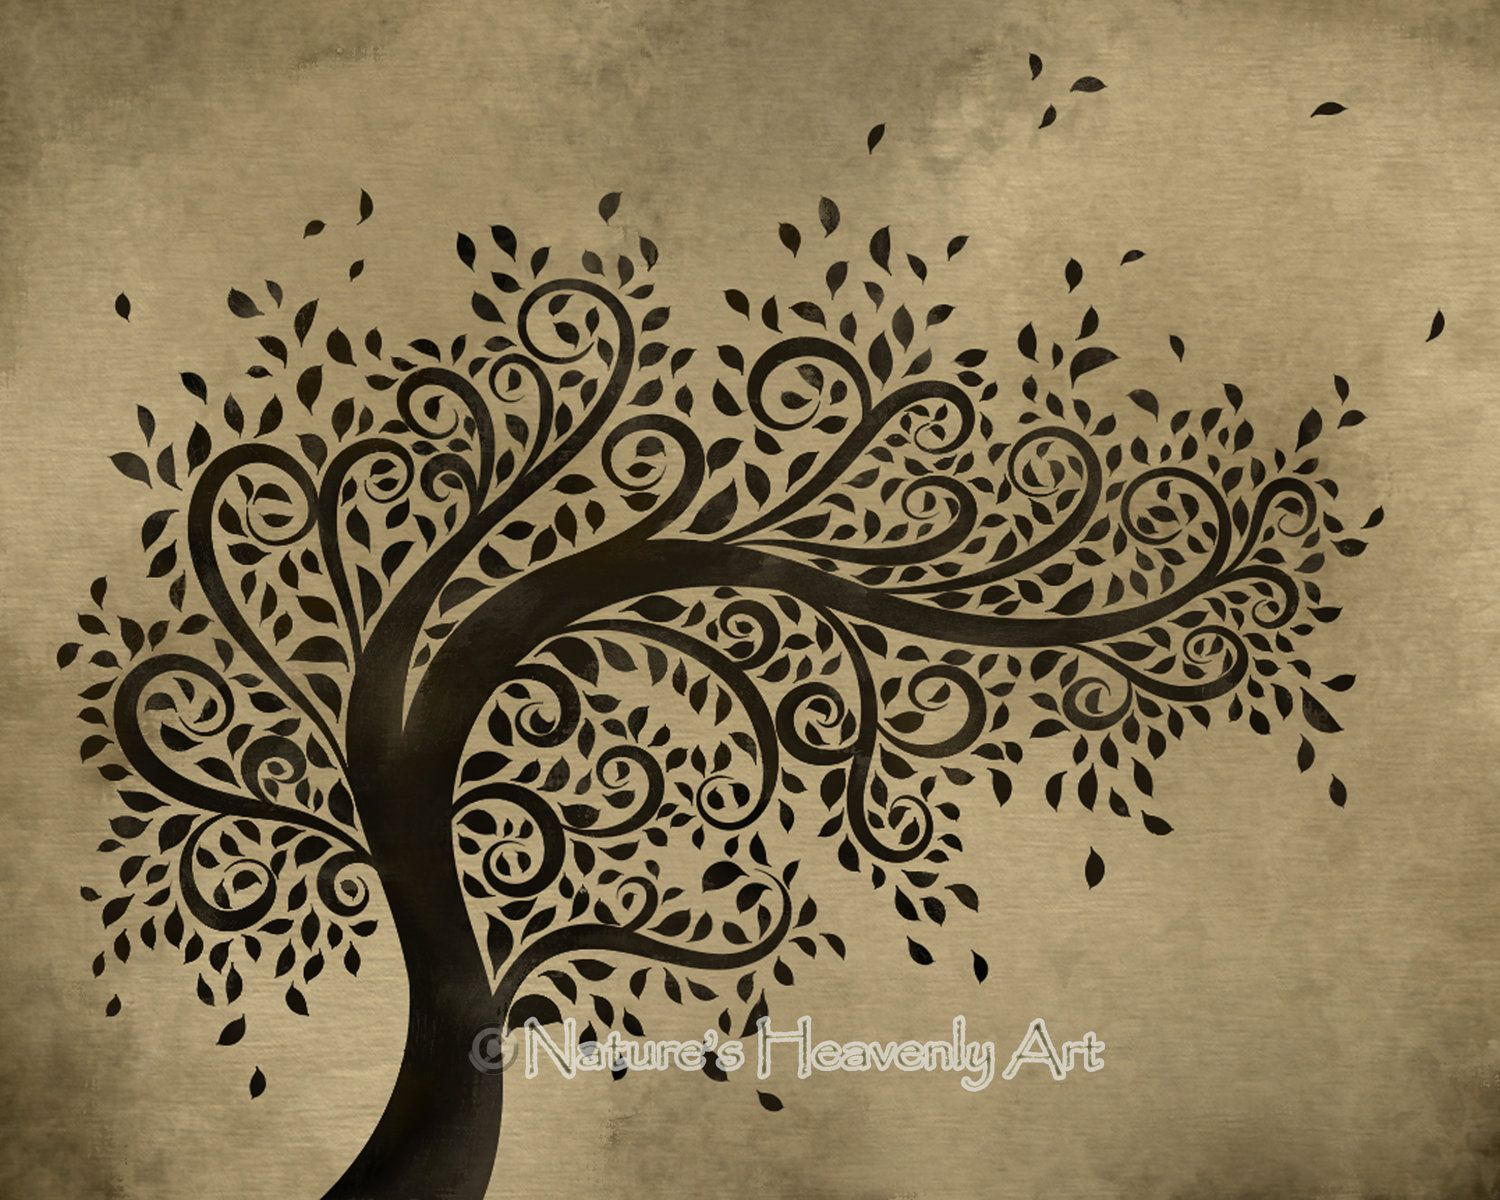 Whimsical Art | Whimsical Art Tree Wall Print, Curly Intended For Blowing Leaves Wall Decor (View 20 of 30)